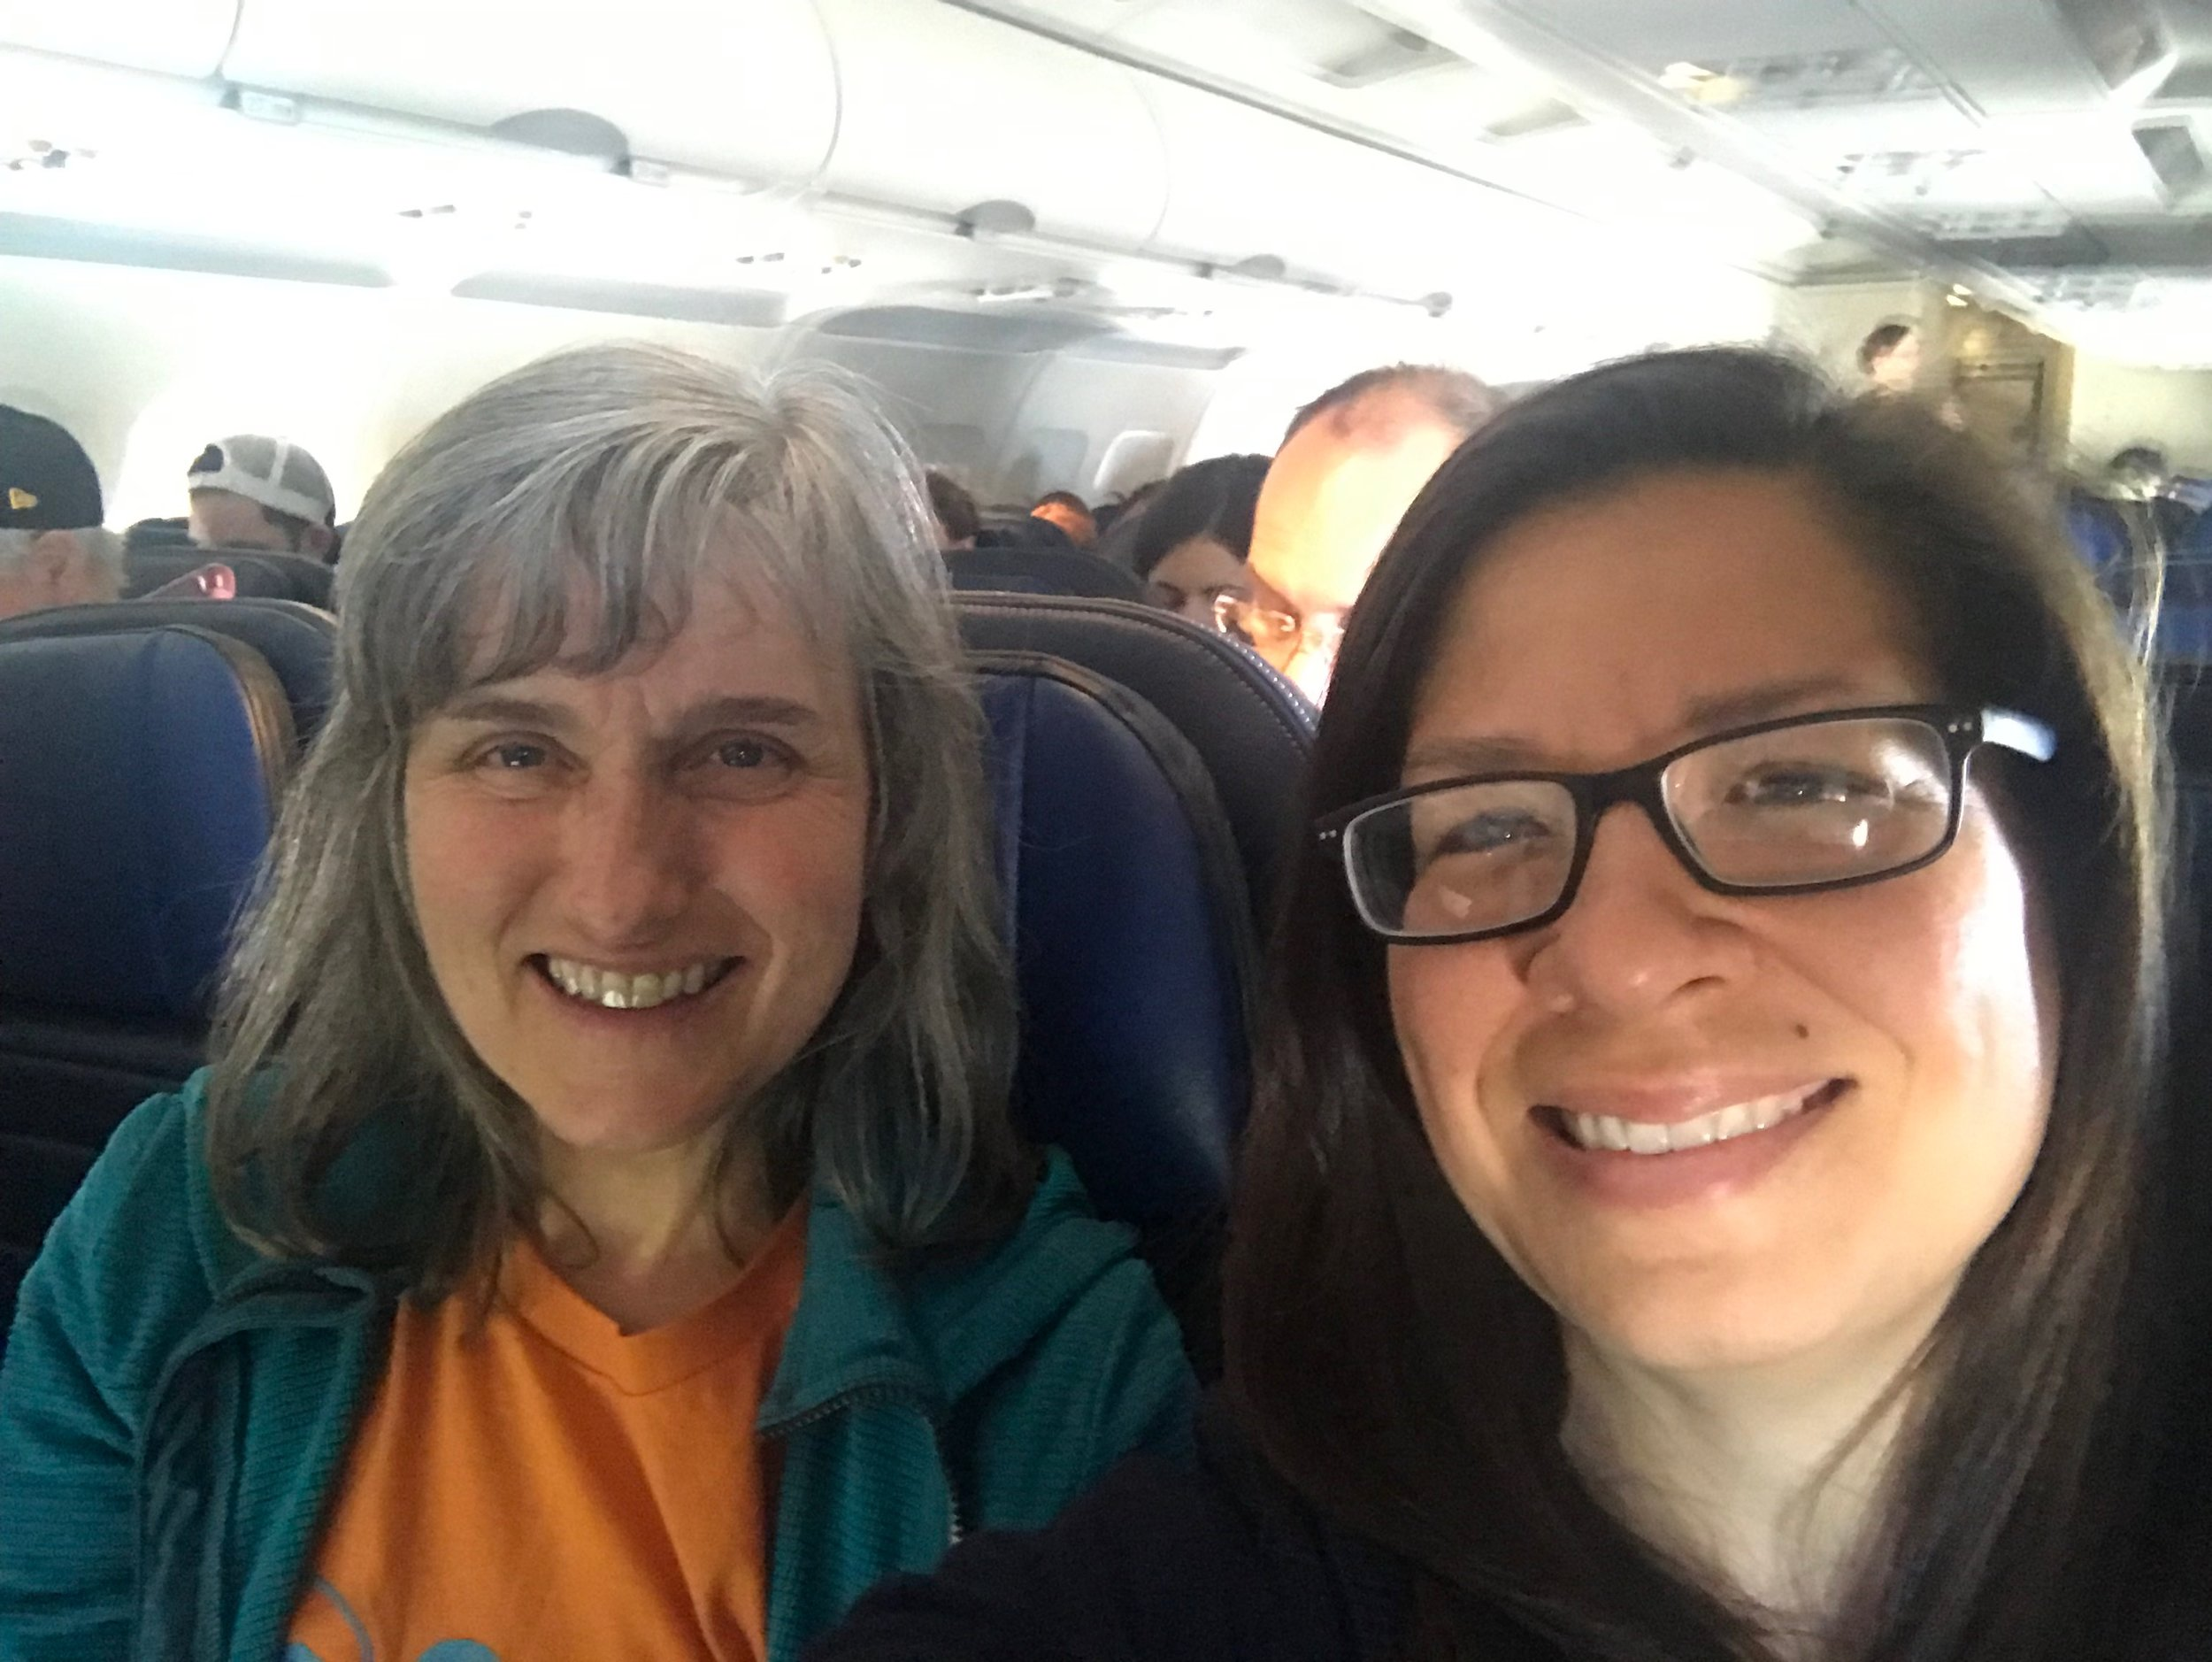 Bridget Cooke (left), Adelante Mujeres Executive Director, and Evelyn Cantoral (right), Adelante Mujeres Director of Development on the plane to NYC for the Renewal Awards.